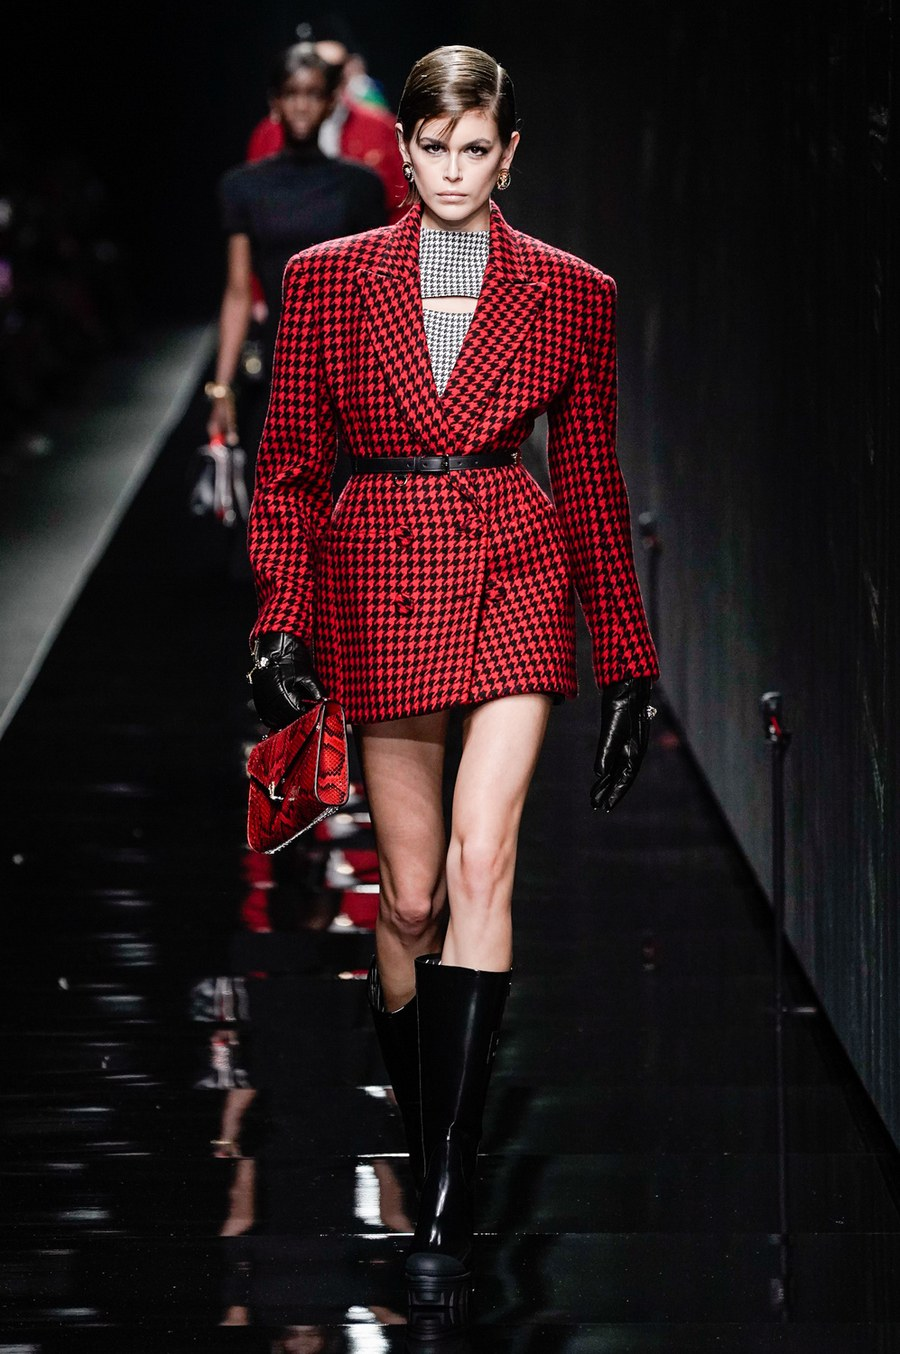 Kaia Gerber layered up in plaid pieces on the Versace Milan Fashion Week FW20 Runway